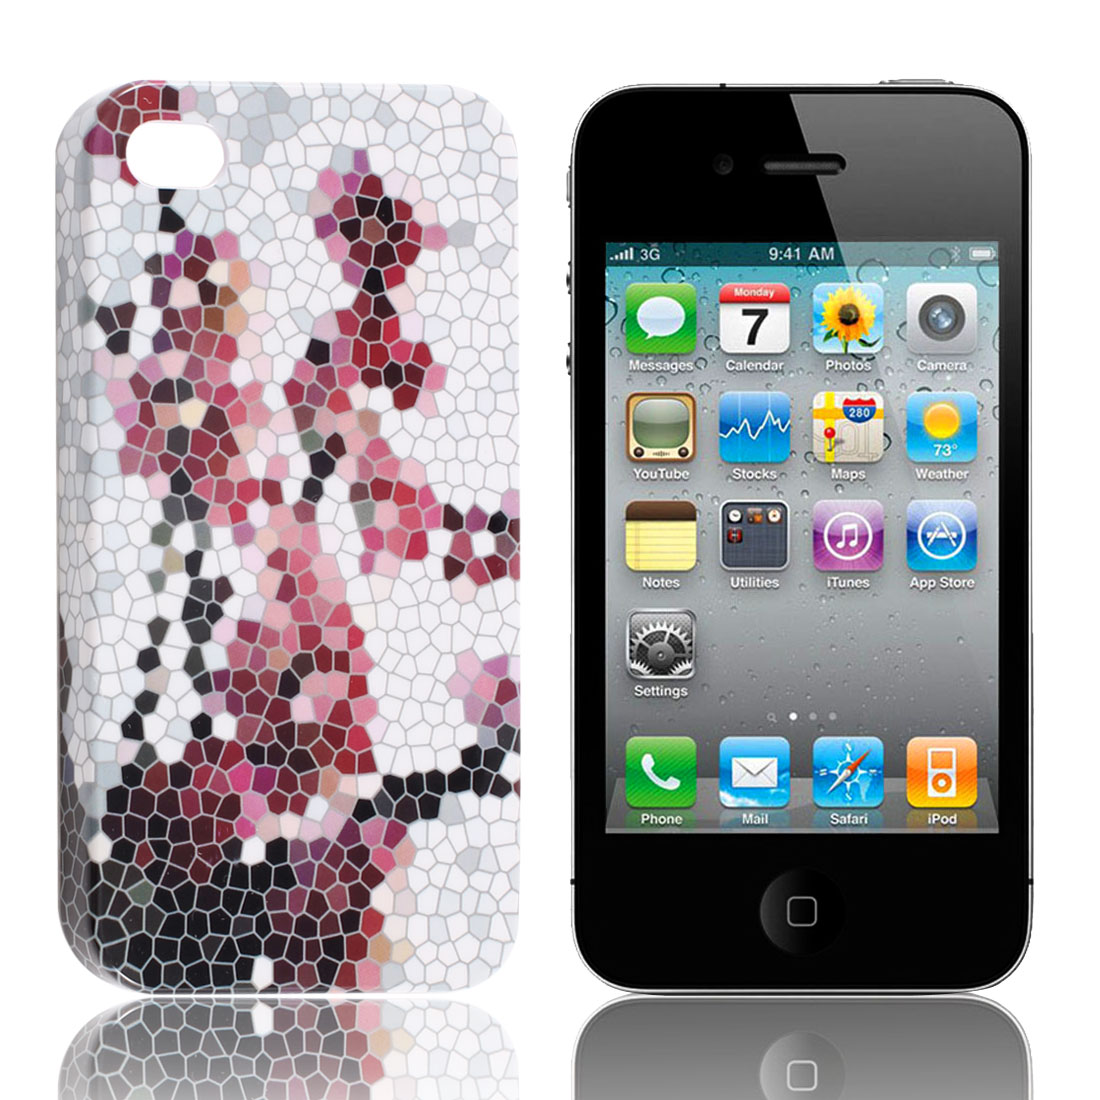 Colorful Stone Print Hard Back Case Shell for iPhone 4 4G 4th 4S 4GS